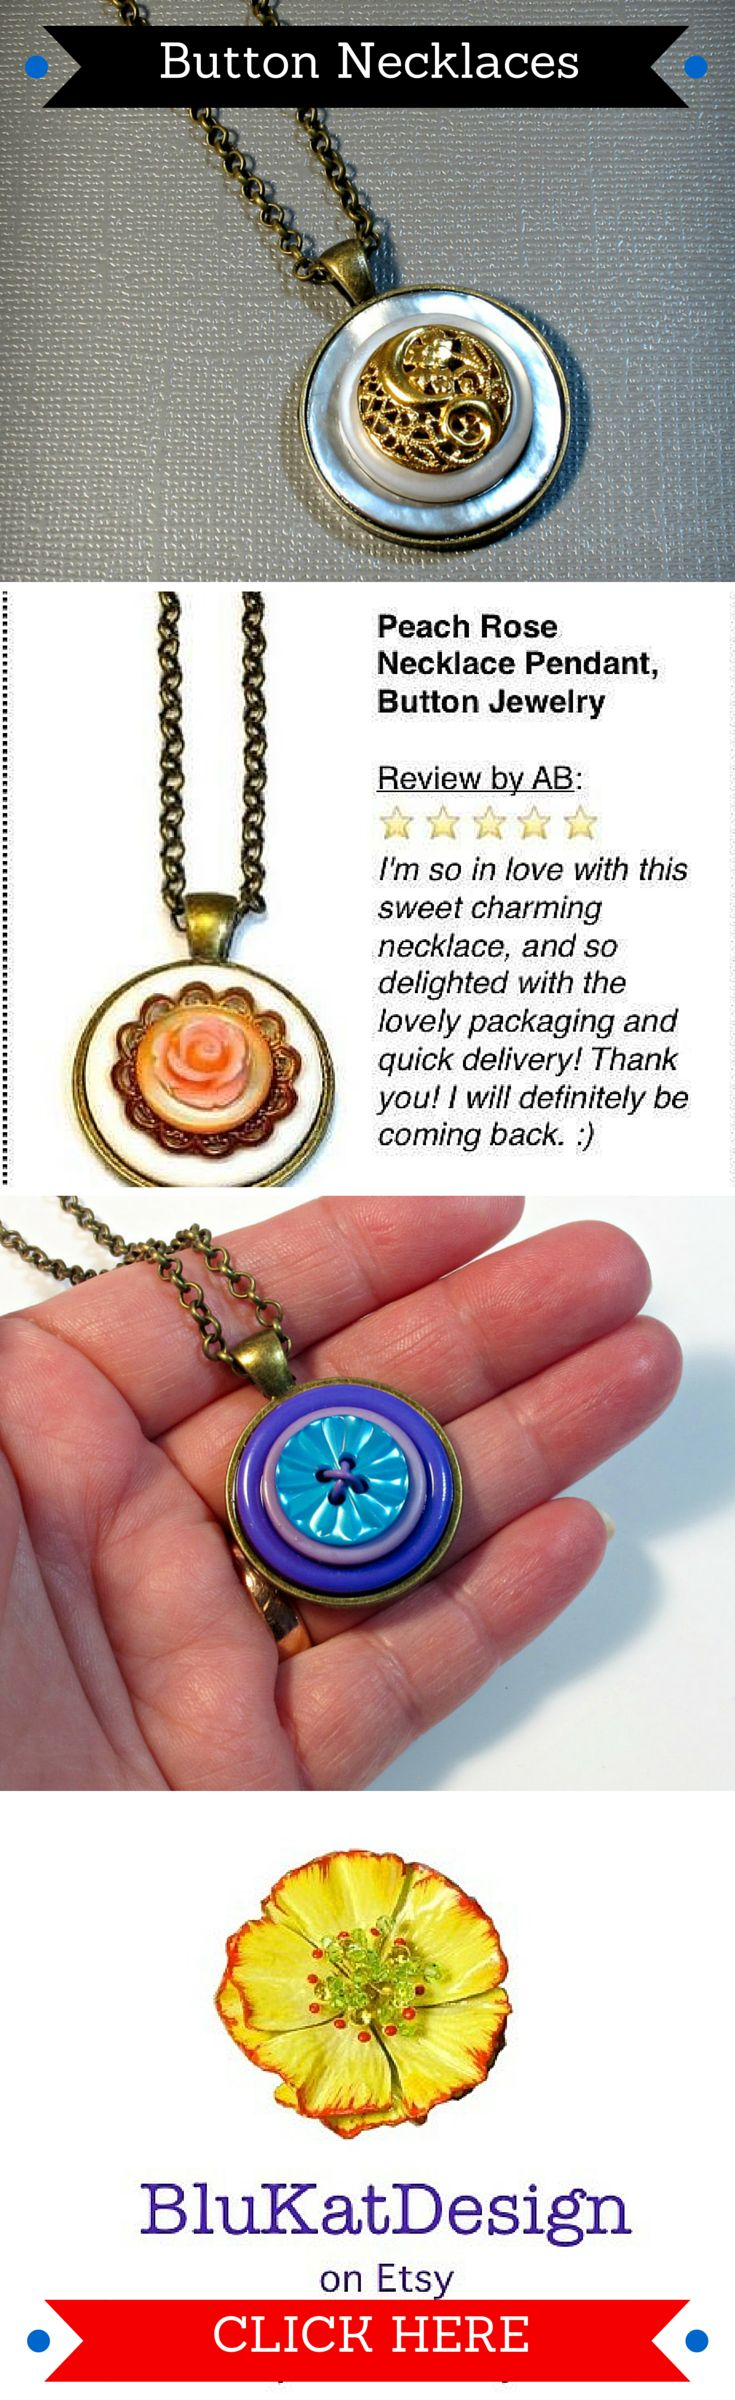 One-of-a-kind, vintage button pendant necklaces-> http://etsy.me/1c27ZH4  #upcycled #jewelry